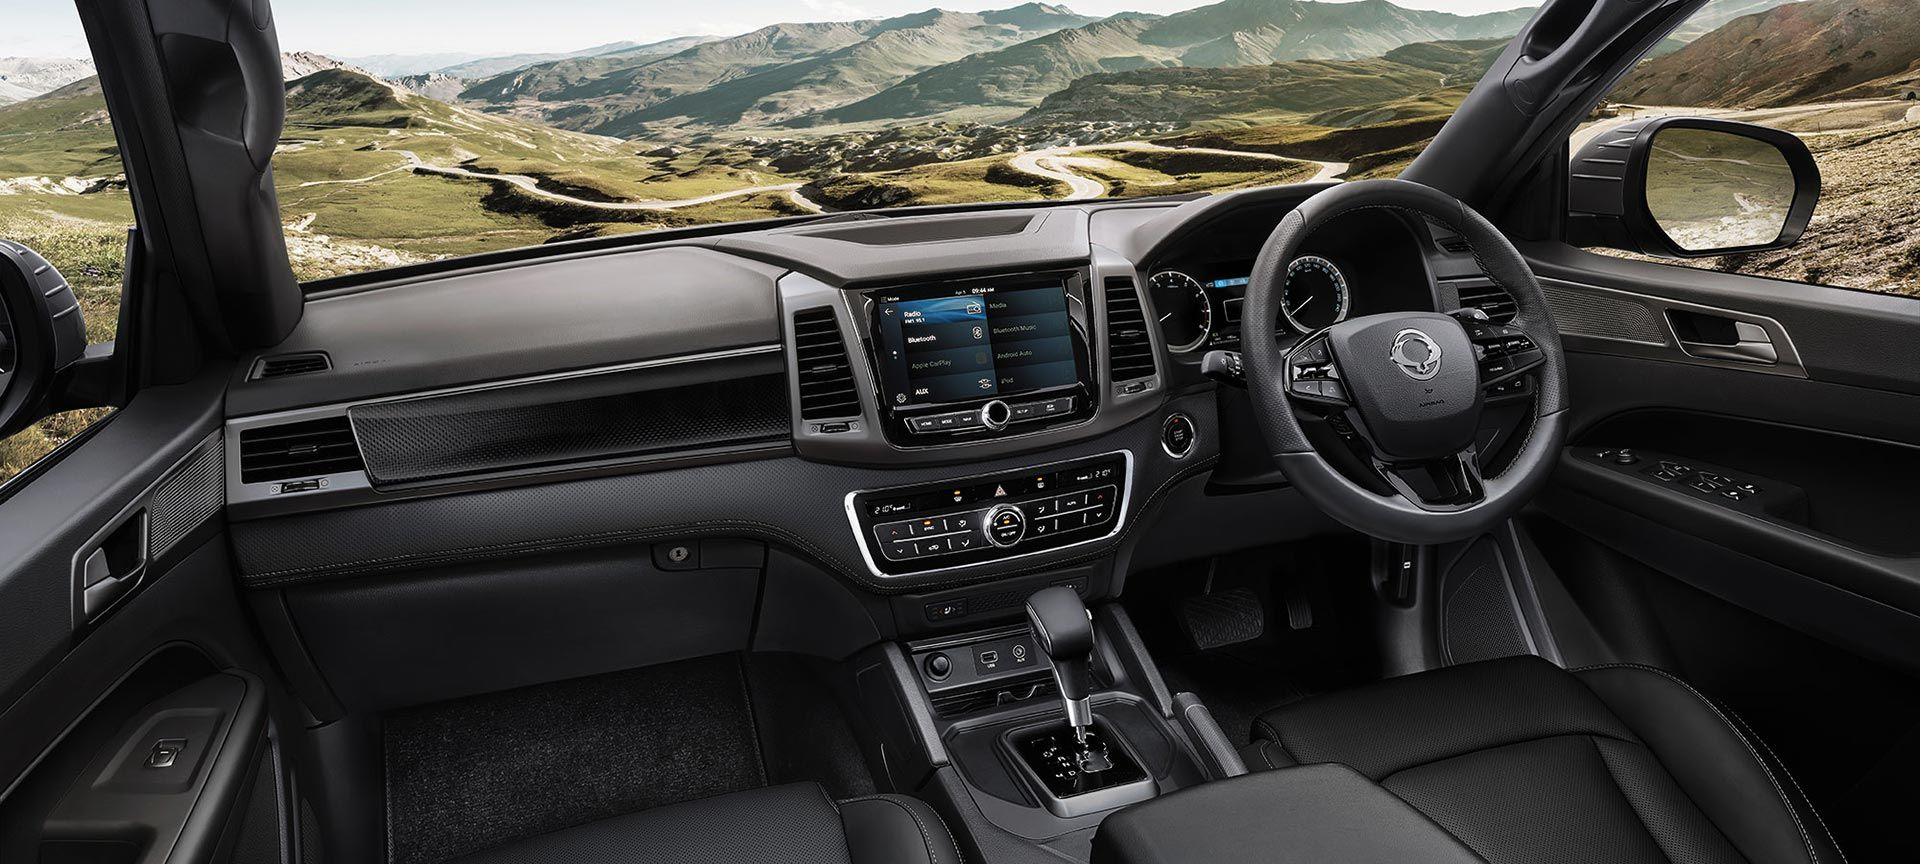 SsangYong - Musso - A Connected Drive